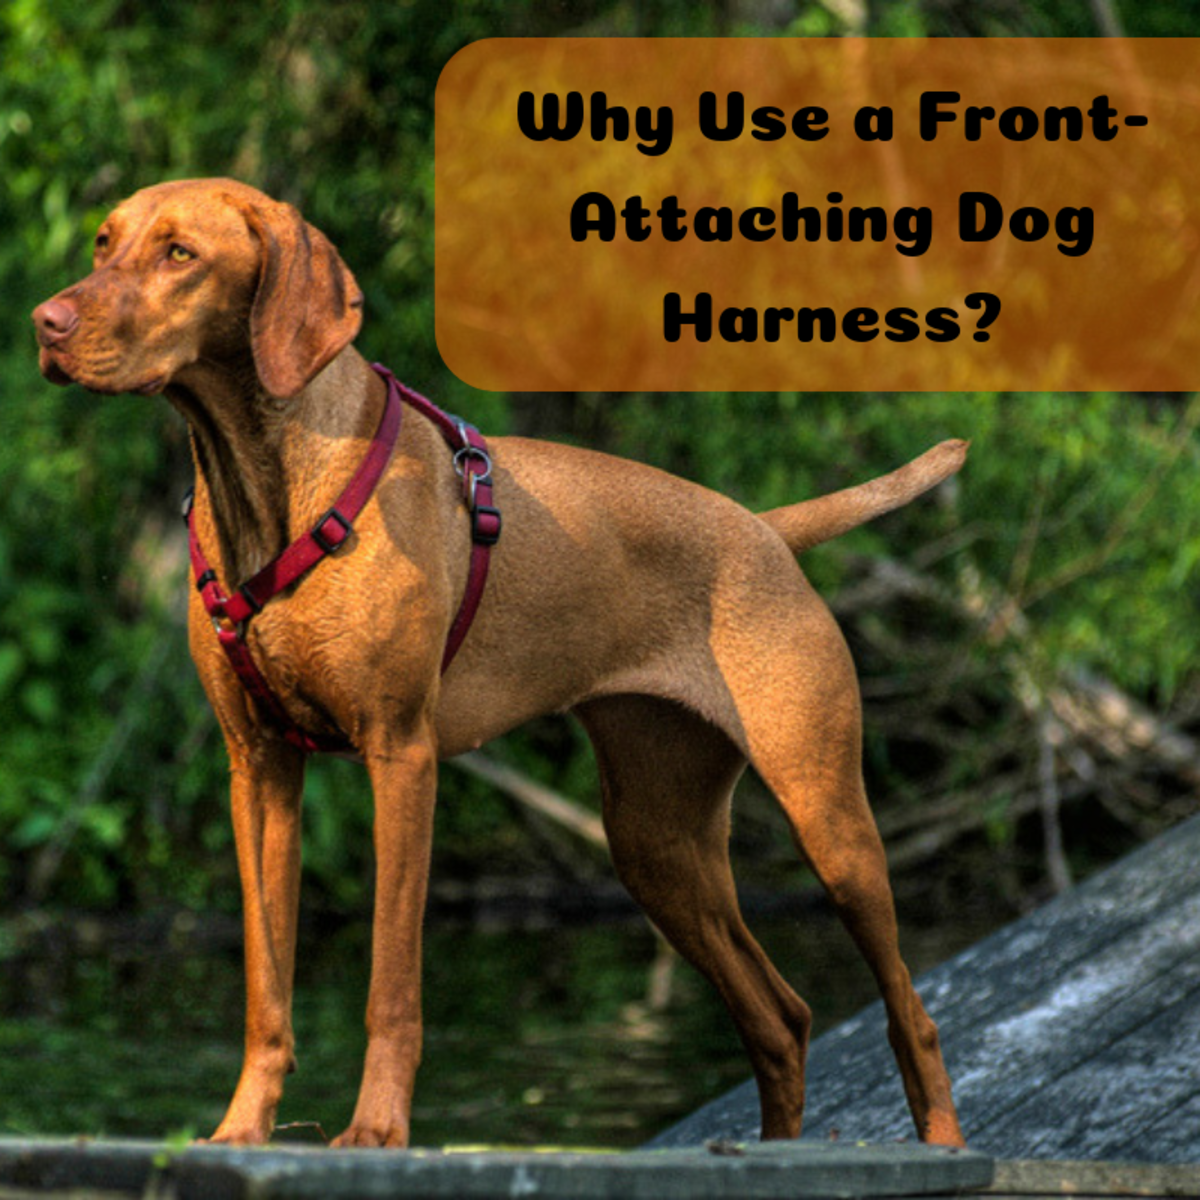 Front-clip harnesses can aid dog owners during training.